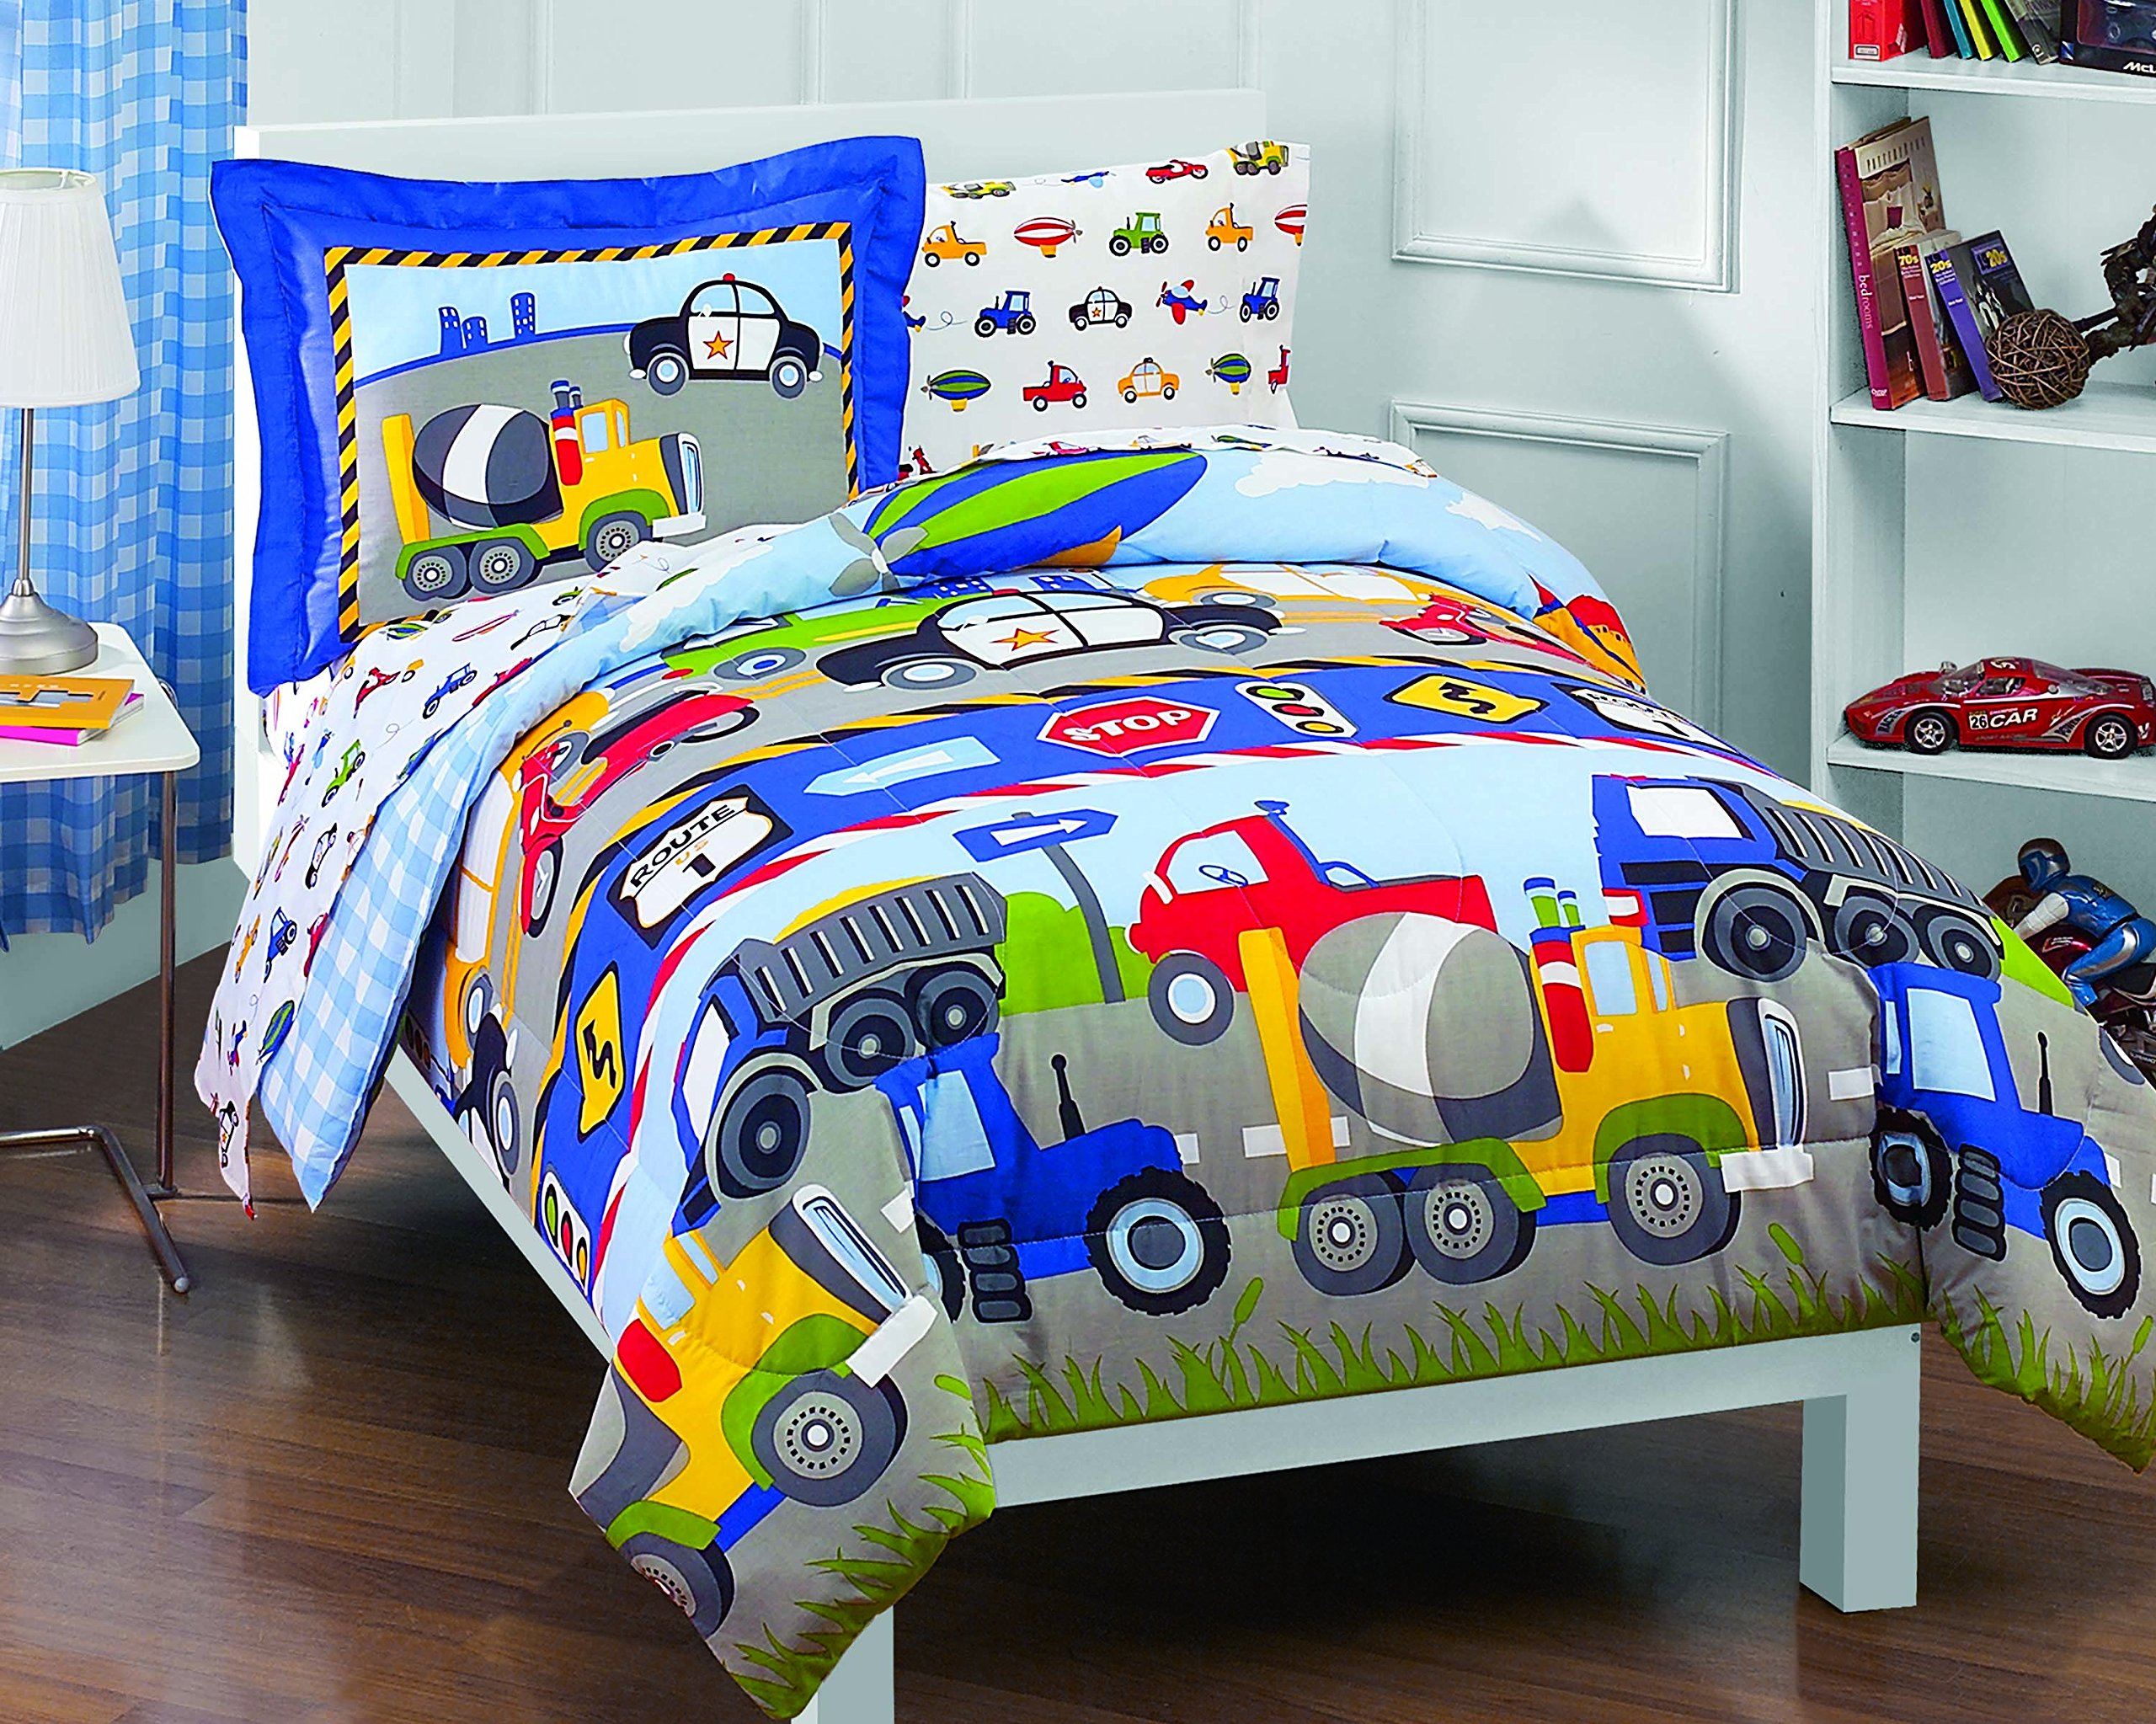 down com apply lightweight home queen hilfiger full amusing your comforter trend decor to and for comforters amazon amazonamusing tommy improvement ideen alternative walmart interesting